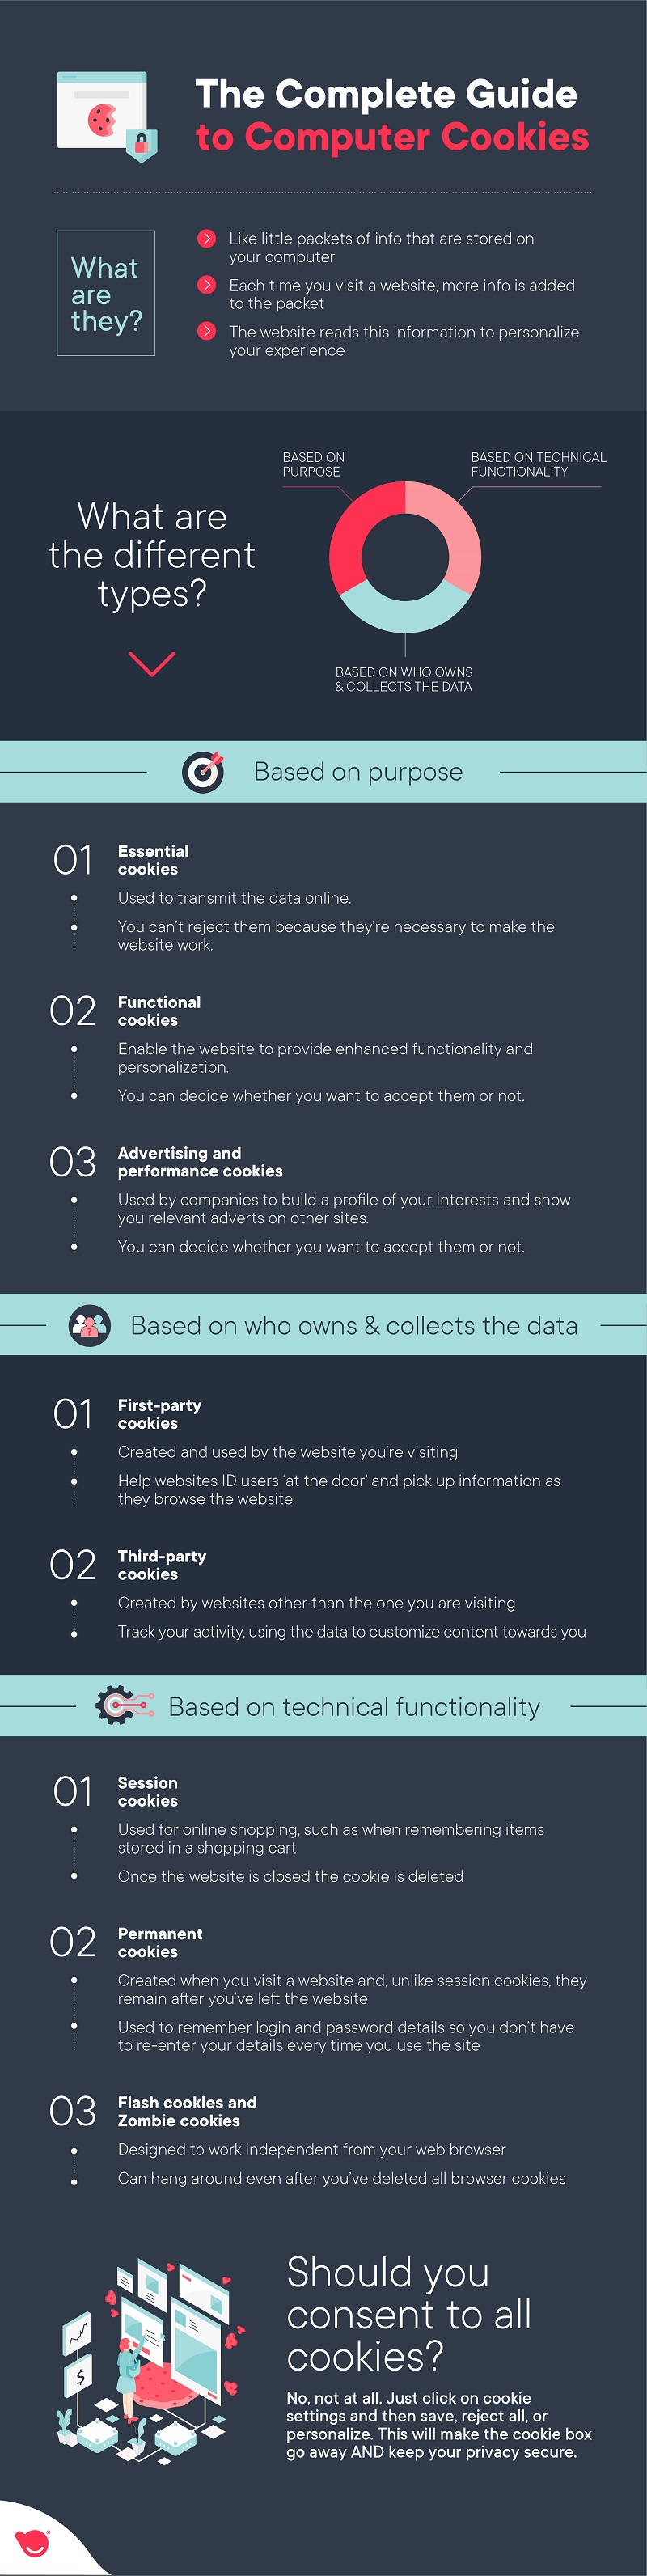 computer cookies guide - TechBuddy infographic